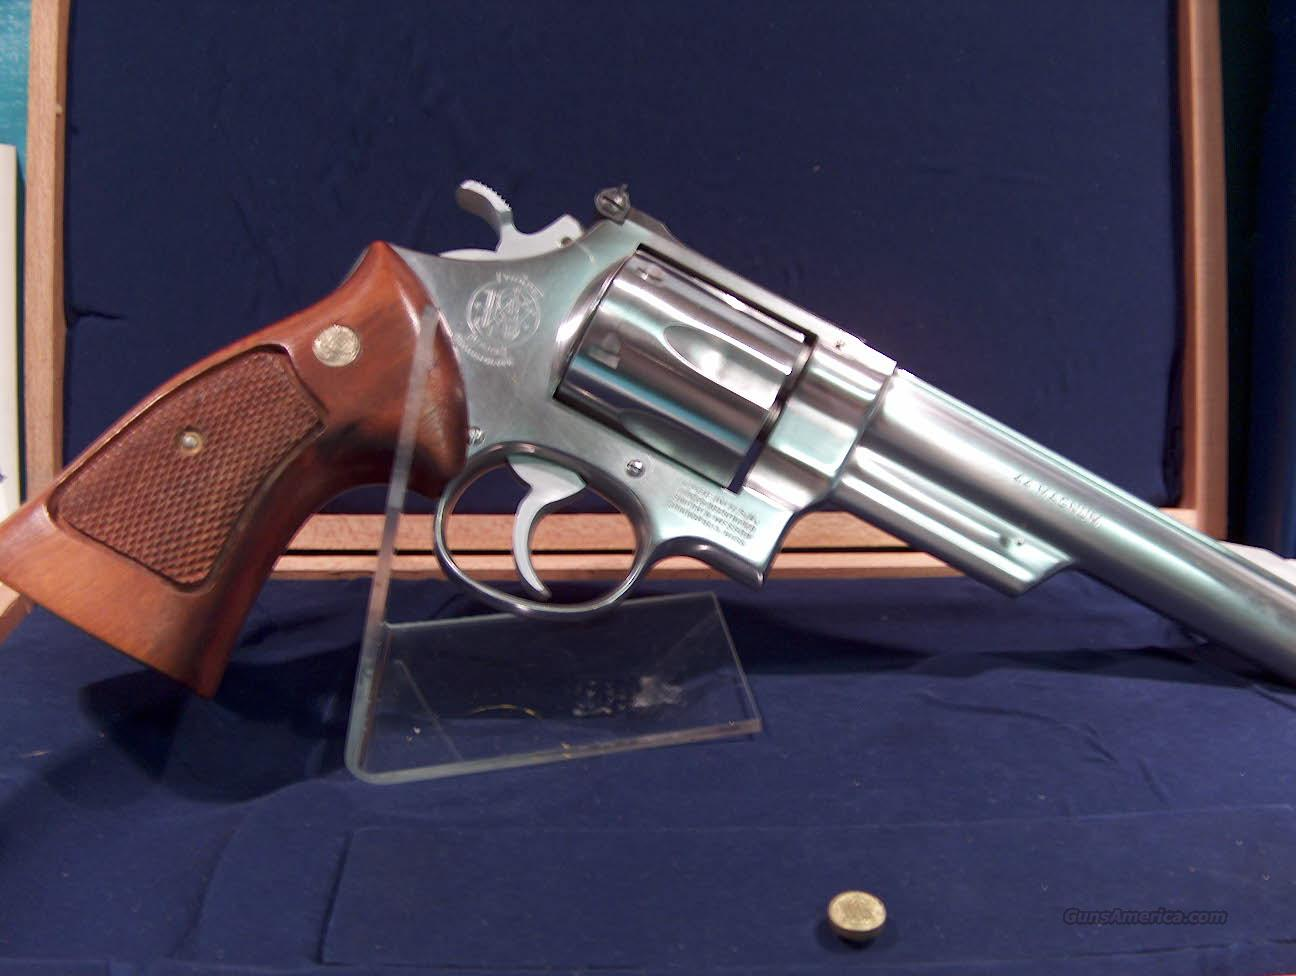 SMITH & WESSON - STAINLESS - MODEL 62-9 - CAL 44 MAG - W/ DISPLAY CASE  Guns > Pistols > Smith & Wesson Revolvers > Full Frame Revolver